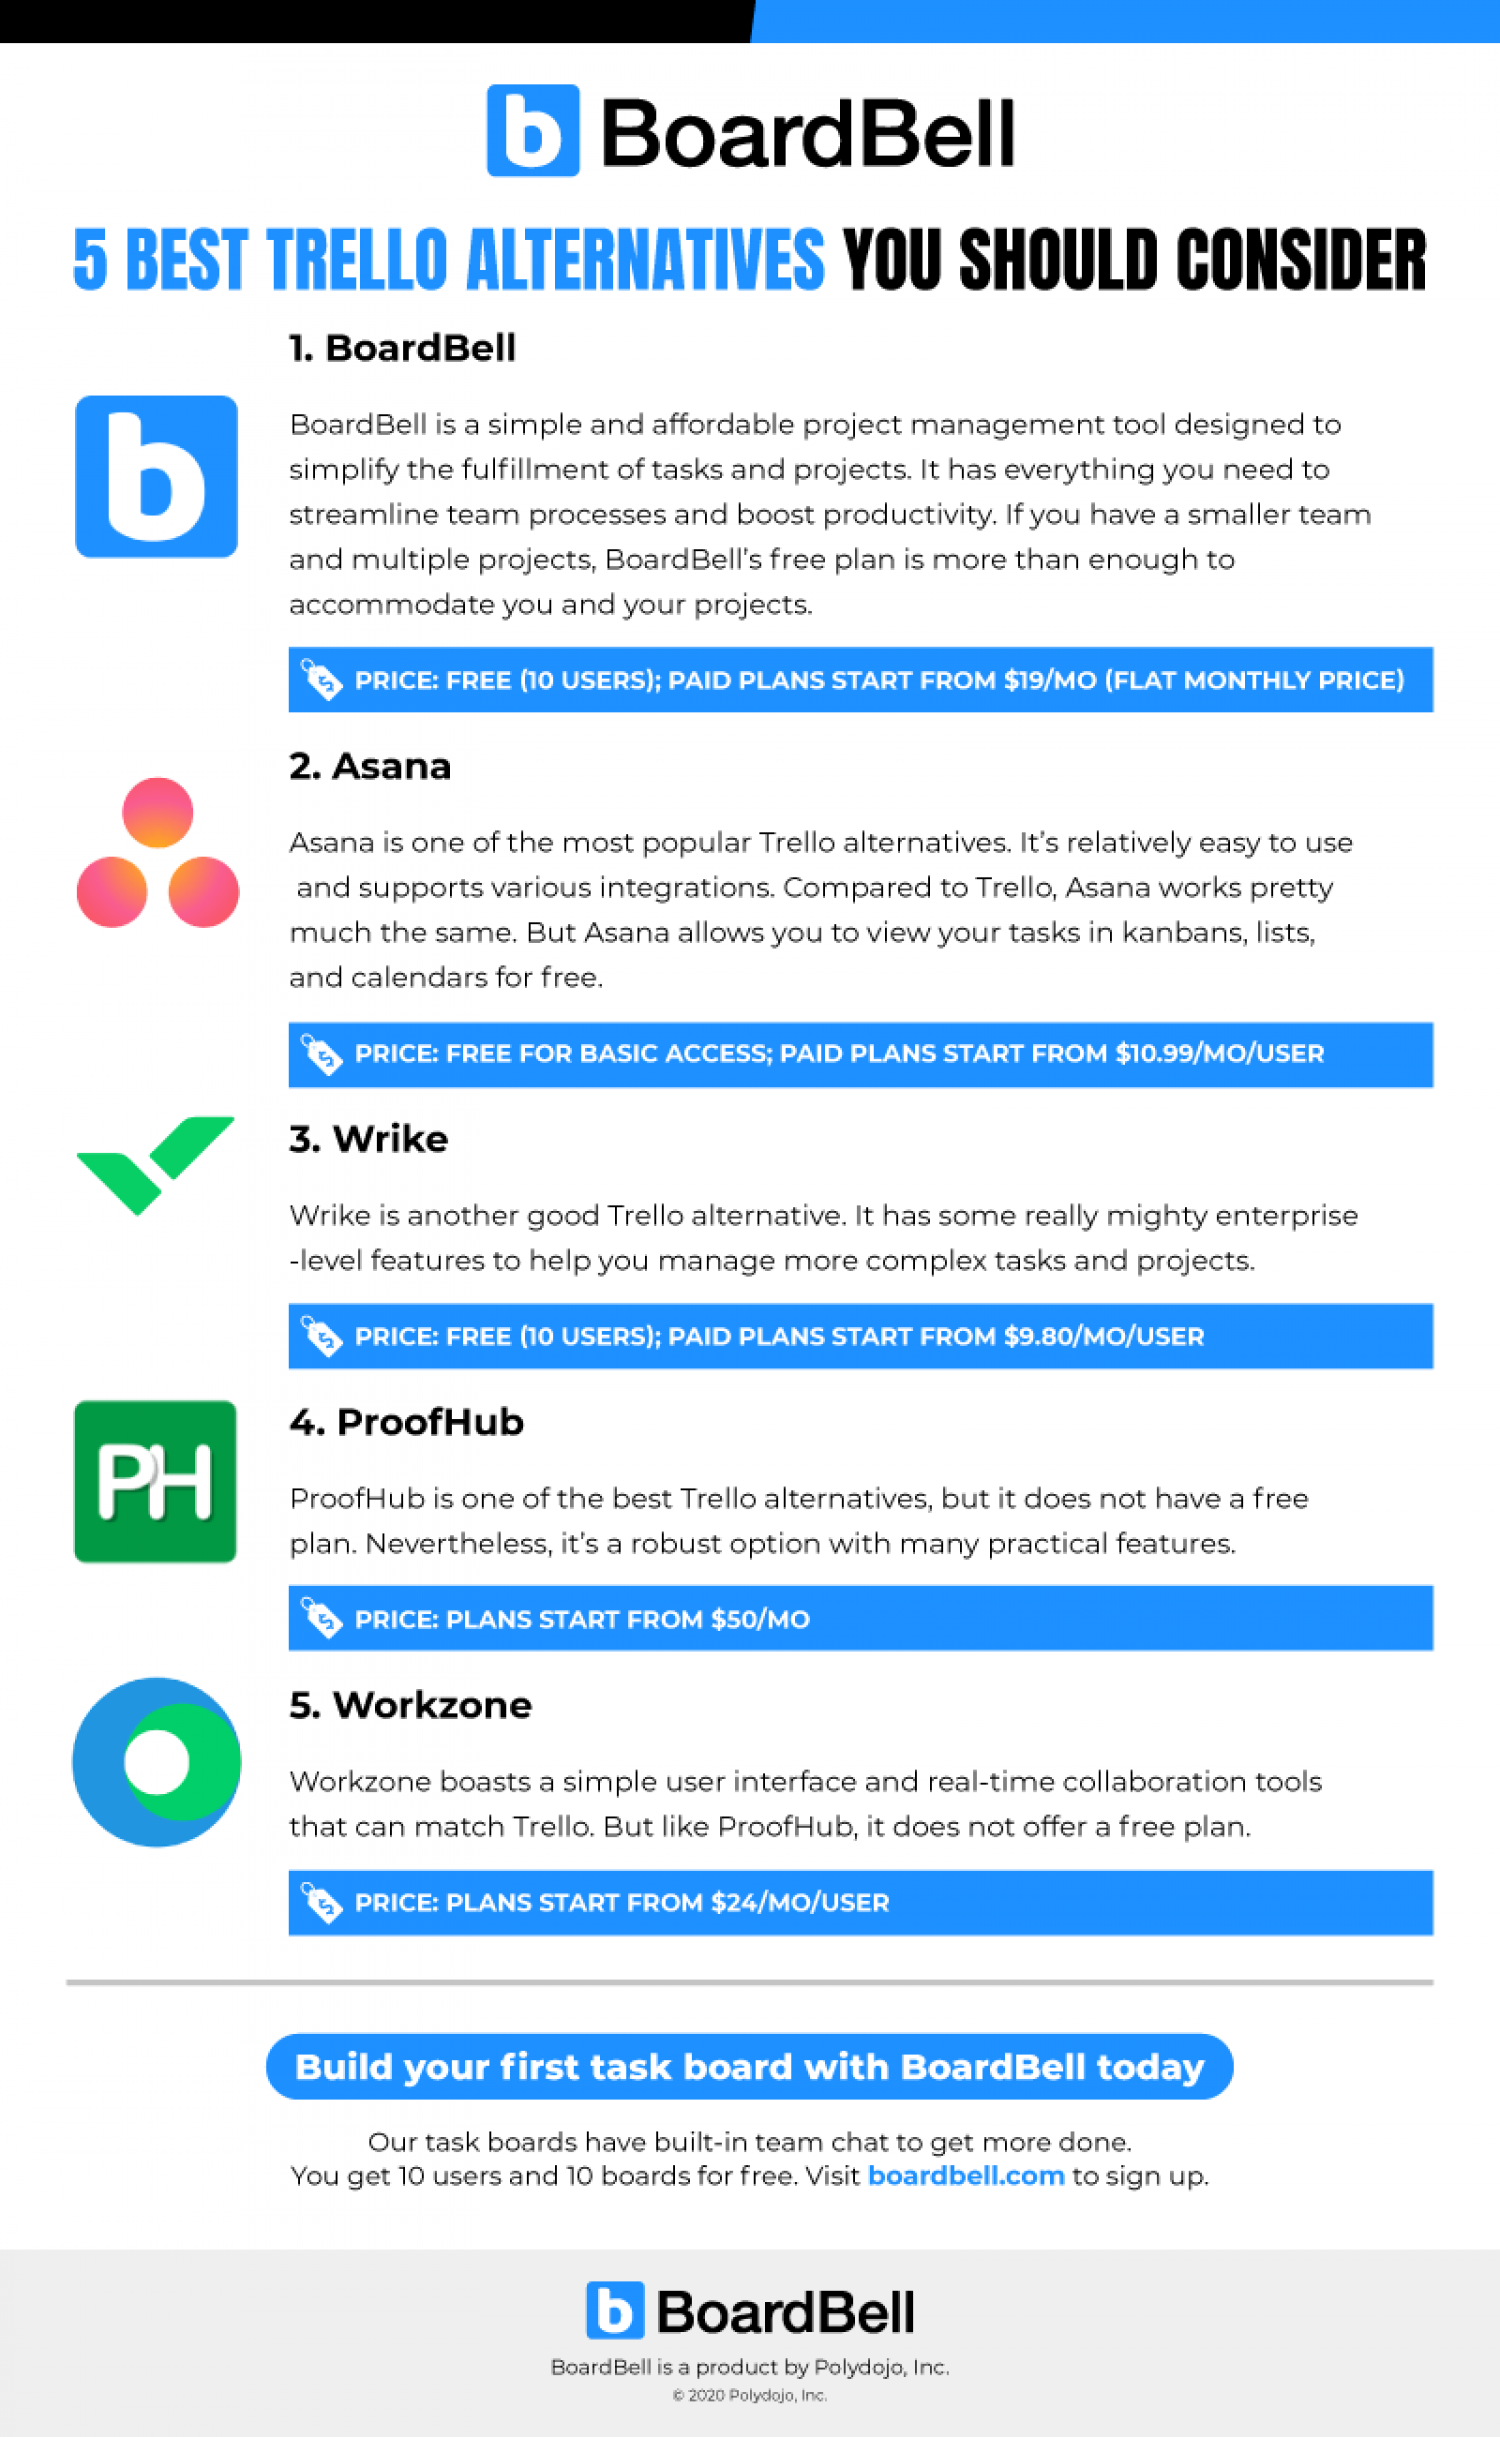 5 Best Trello Alternatives You Should Consider [Infographic] Infographic